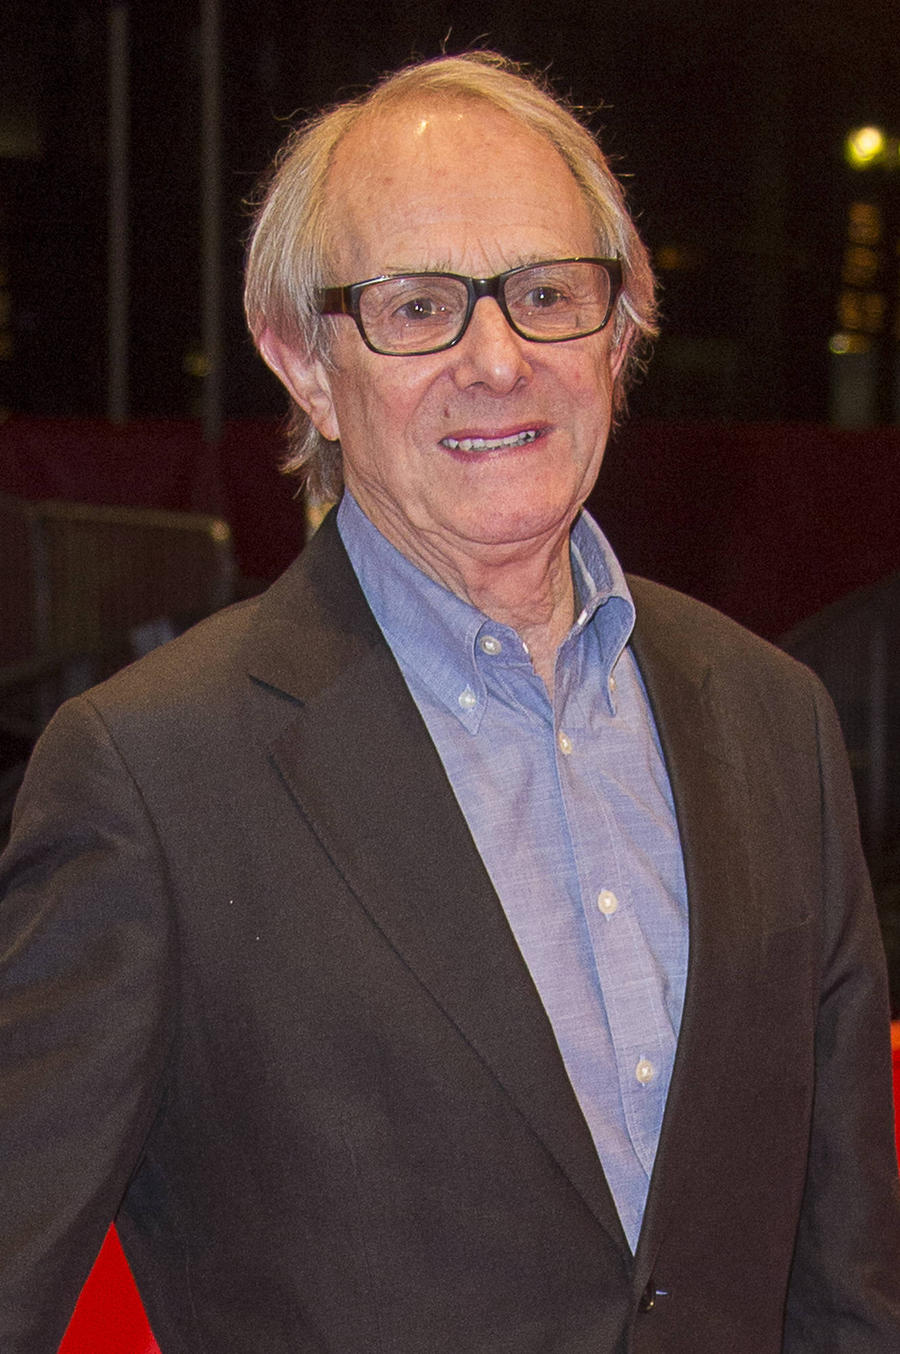 Ken Loach Wins Second Palme D'or At Cannes